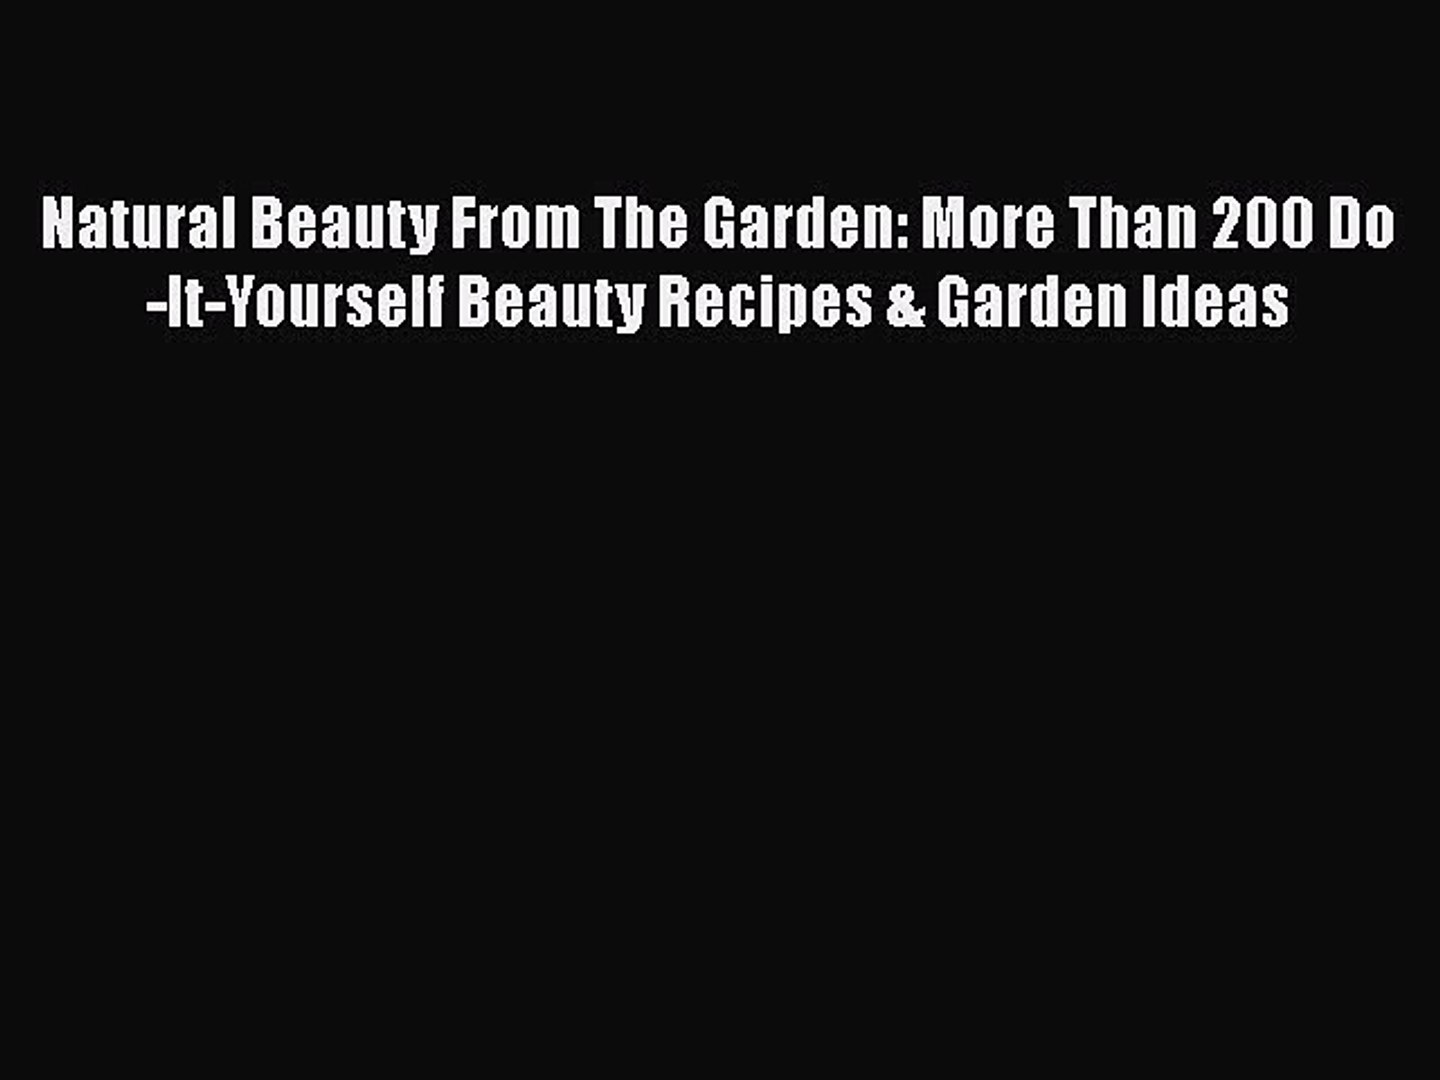 [Read Book] Natural Beauty From The Garden: More Than 200 Do-It-Yourself Beauty Recipes & Garden